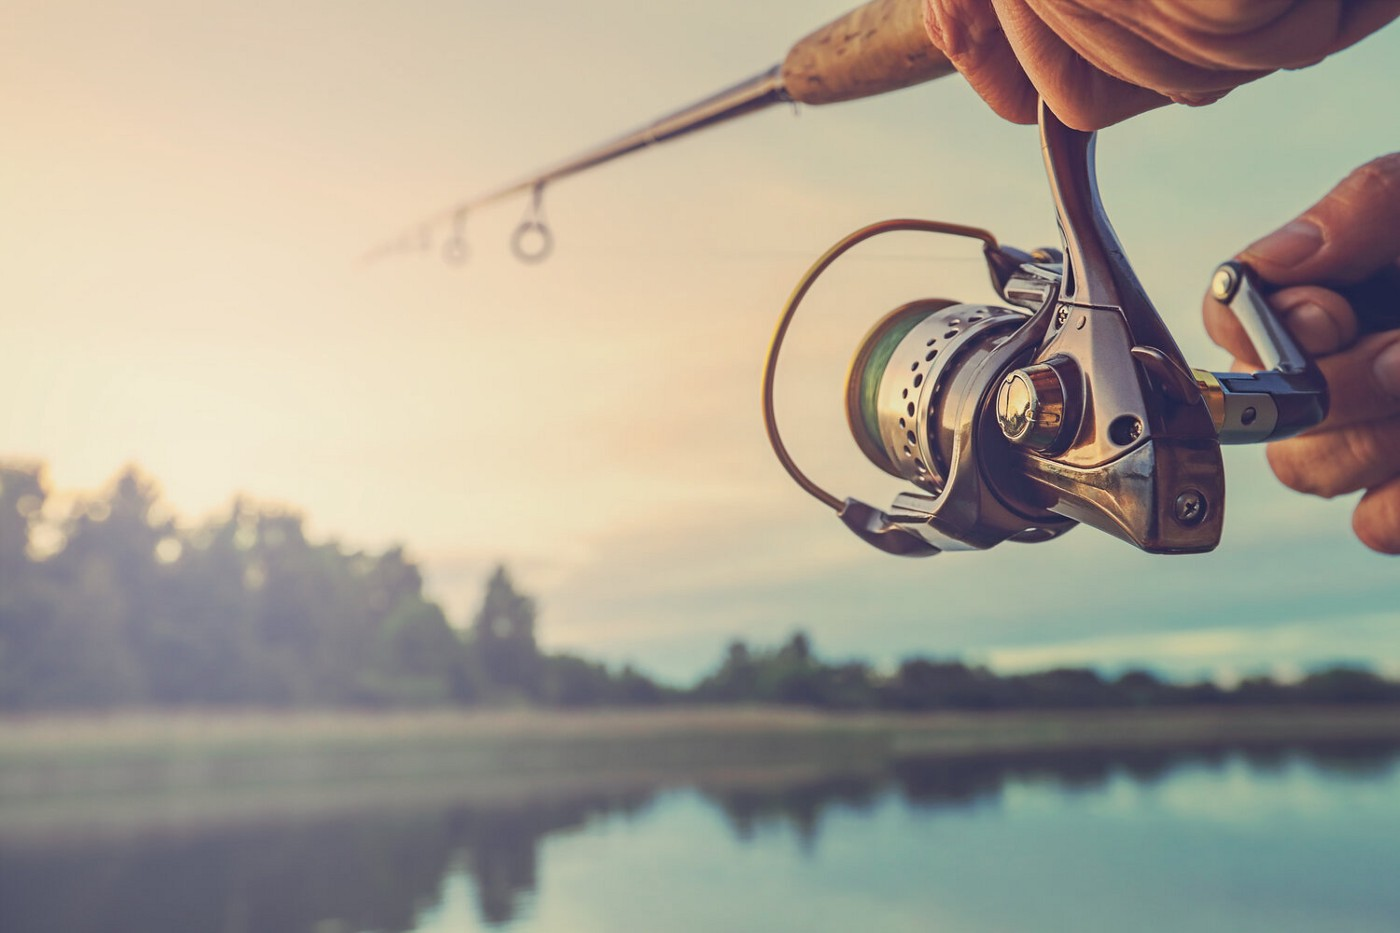 image of person fishing